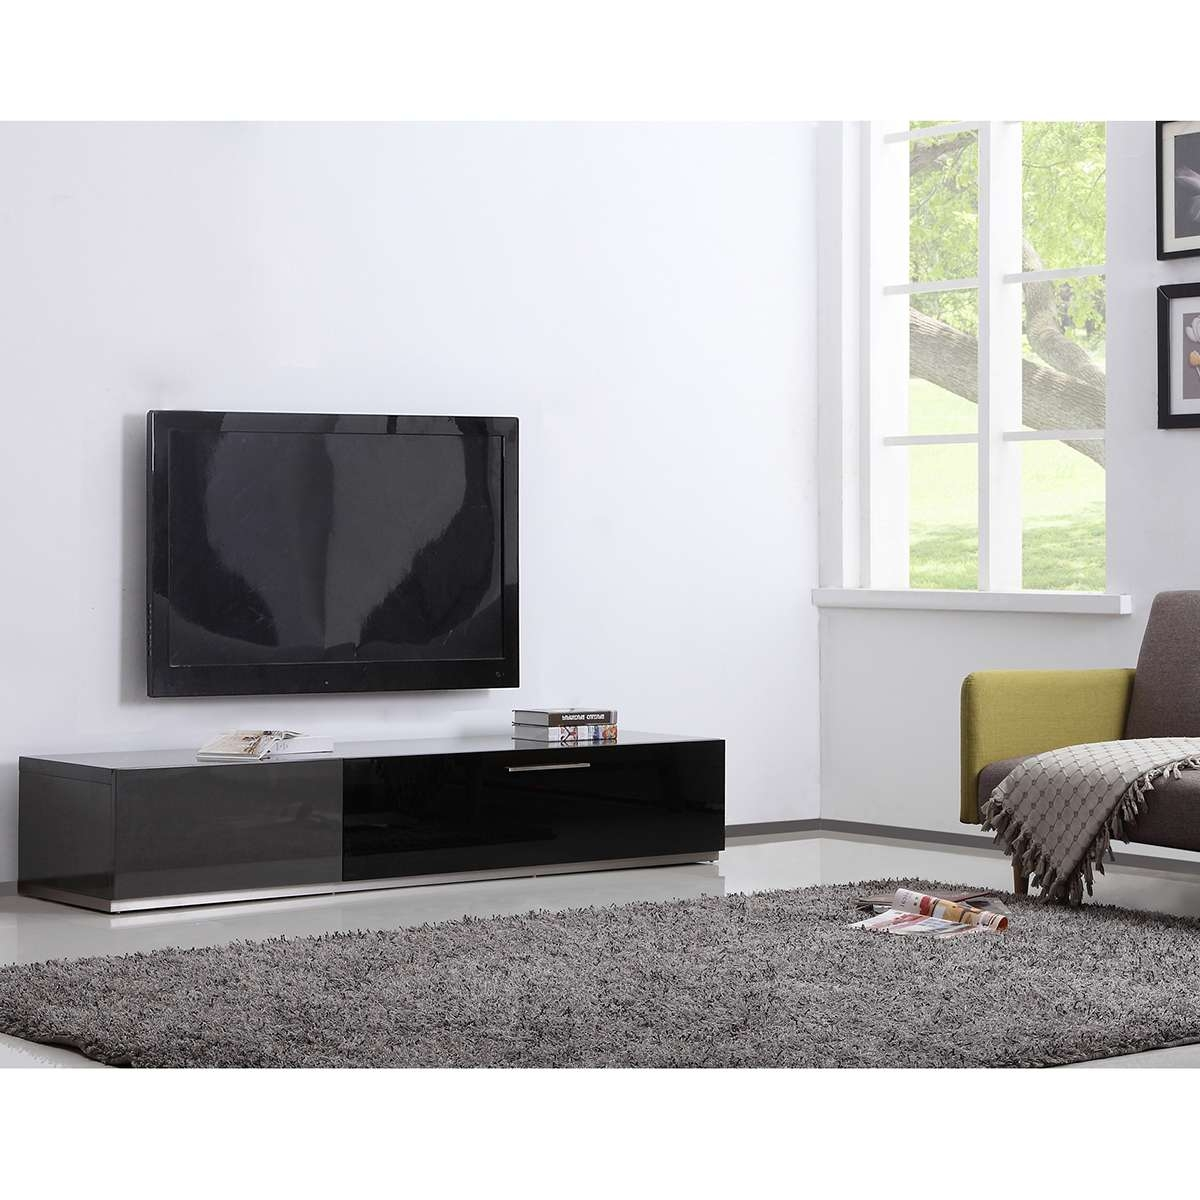 """B Modern Bm 150 Gry Producer 80"""" Contemporary Tv Stand In Grey Throughout Modern Contemporary Tv Stands (View 7 of 20)"""